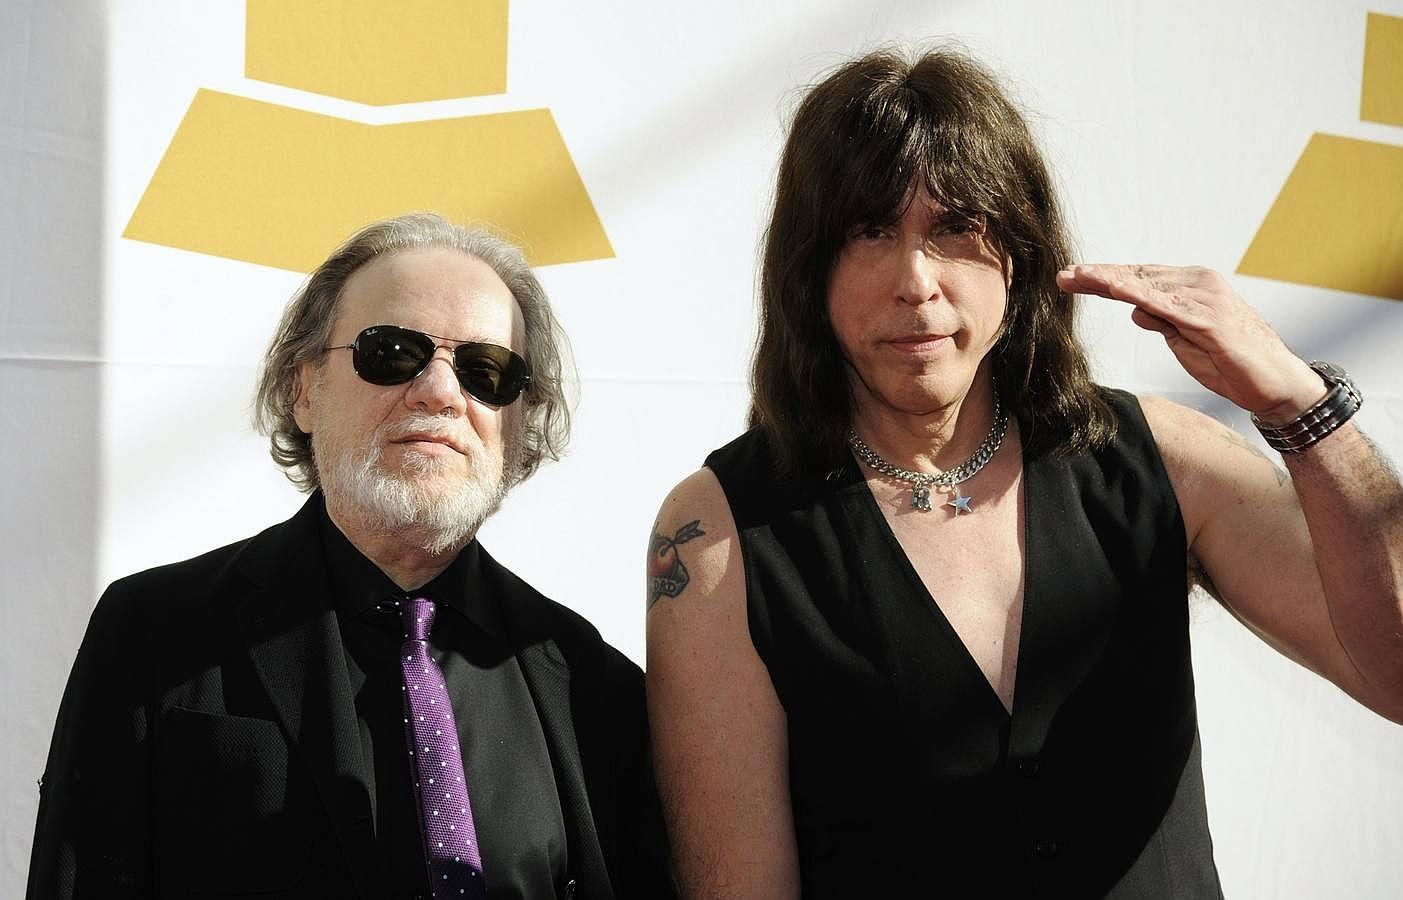 Tommy Ramone (Left) and Marky Ramone attend the Recording Academy Special Merit Awards Ceremony in Los Angeles in this February 12, 2011 - credit: REUTERS/Phil McCarten